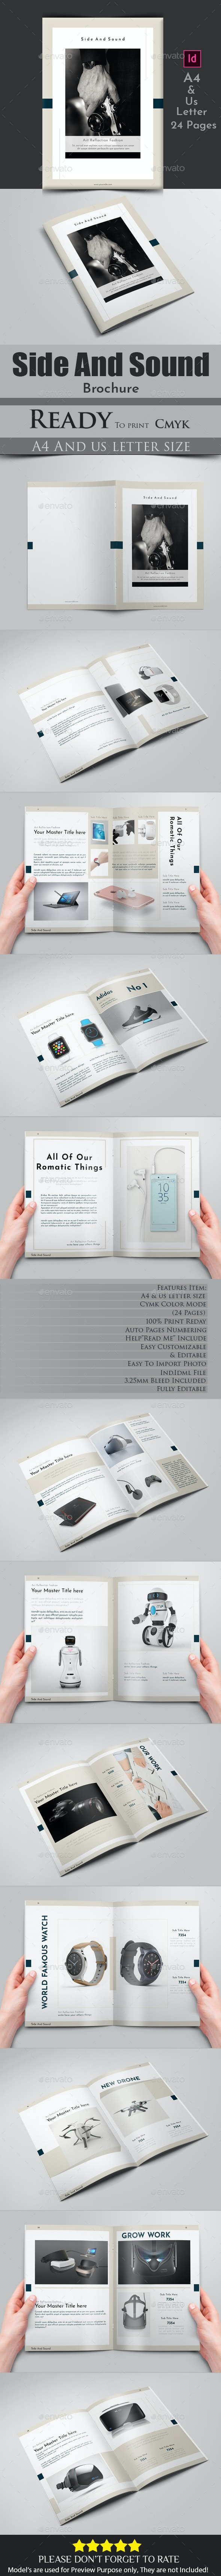 Side And Sound Brochure - Brochures Print Templates